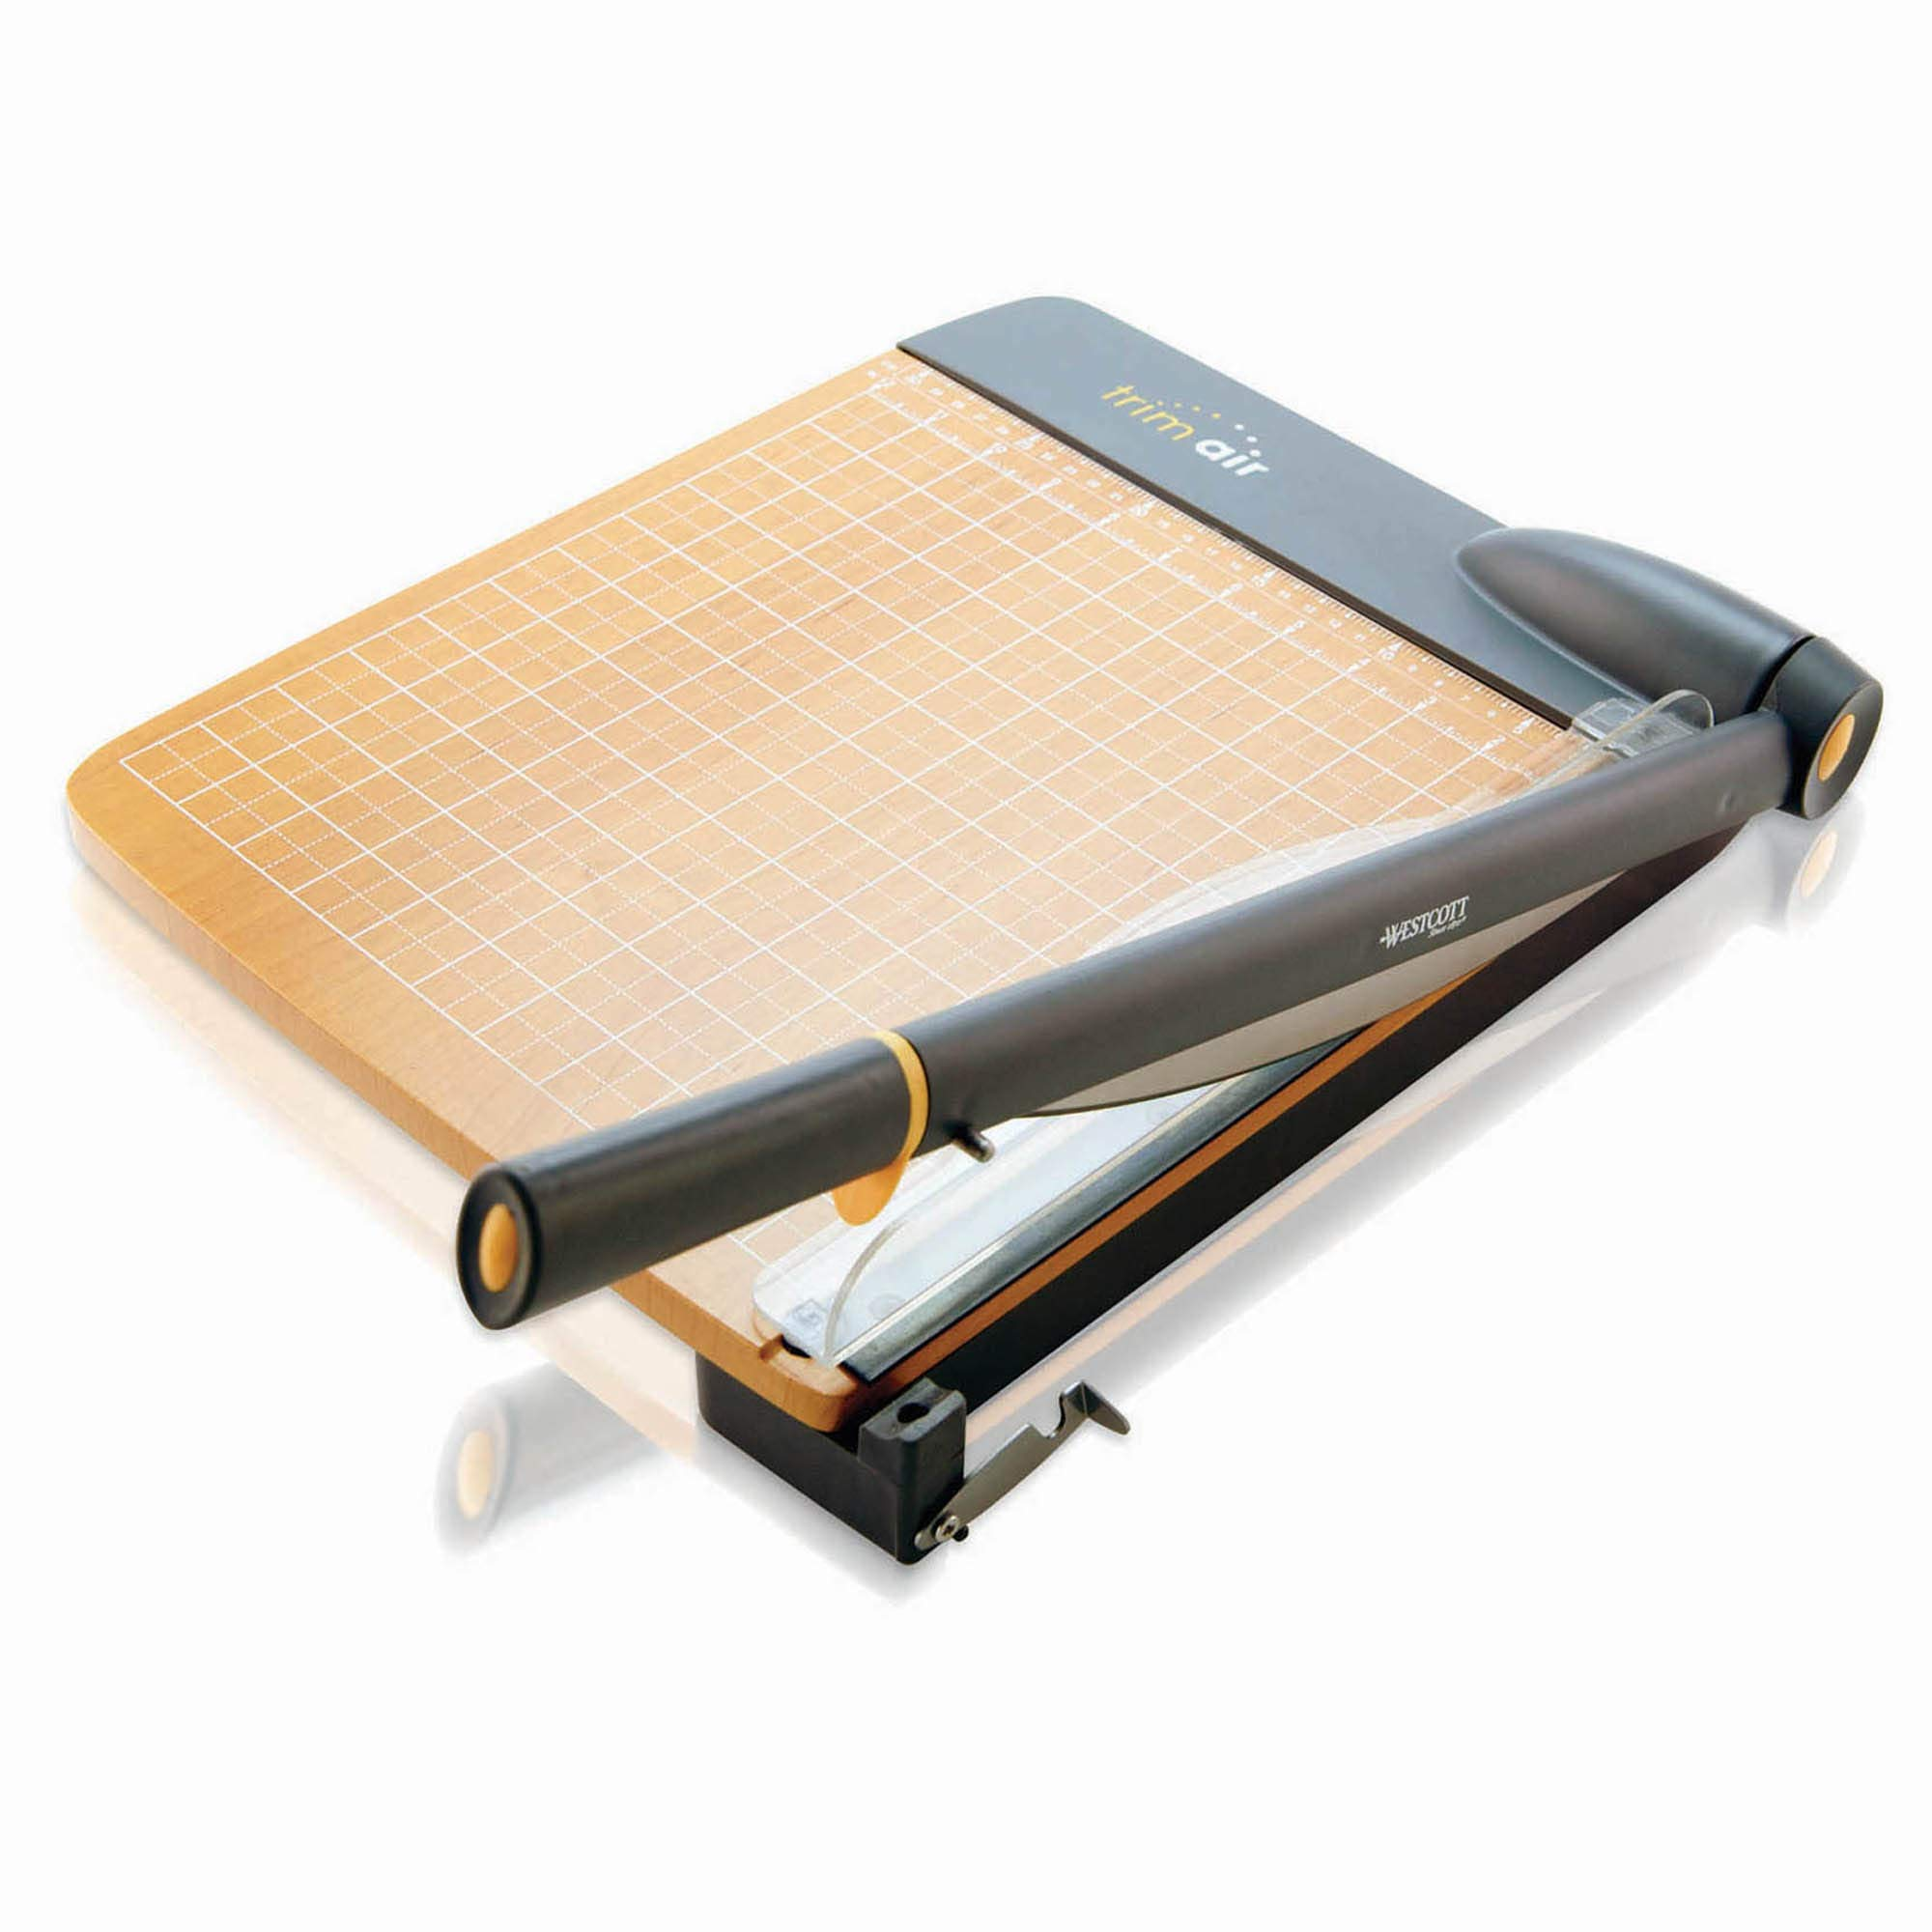 Westcott ACM15106 TrimAir Titanium Wood Guillotine Paper Trimmer with Anti-Microbial Protection, 12'' by Westcott